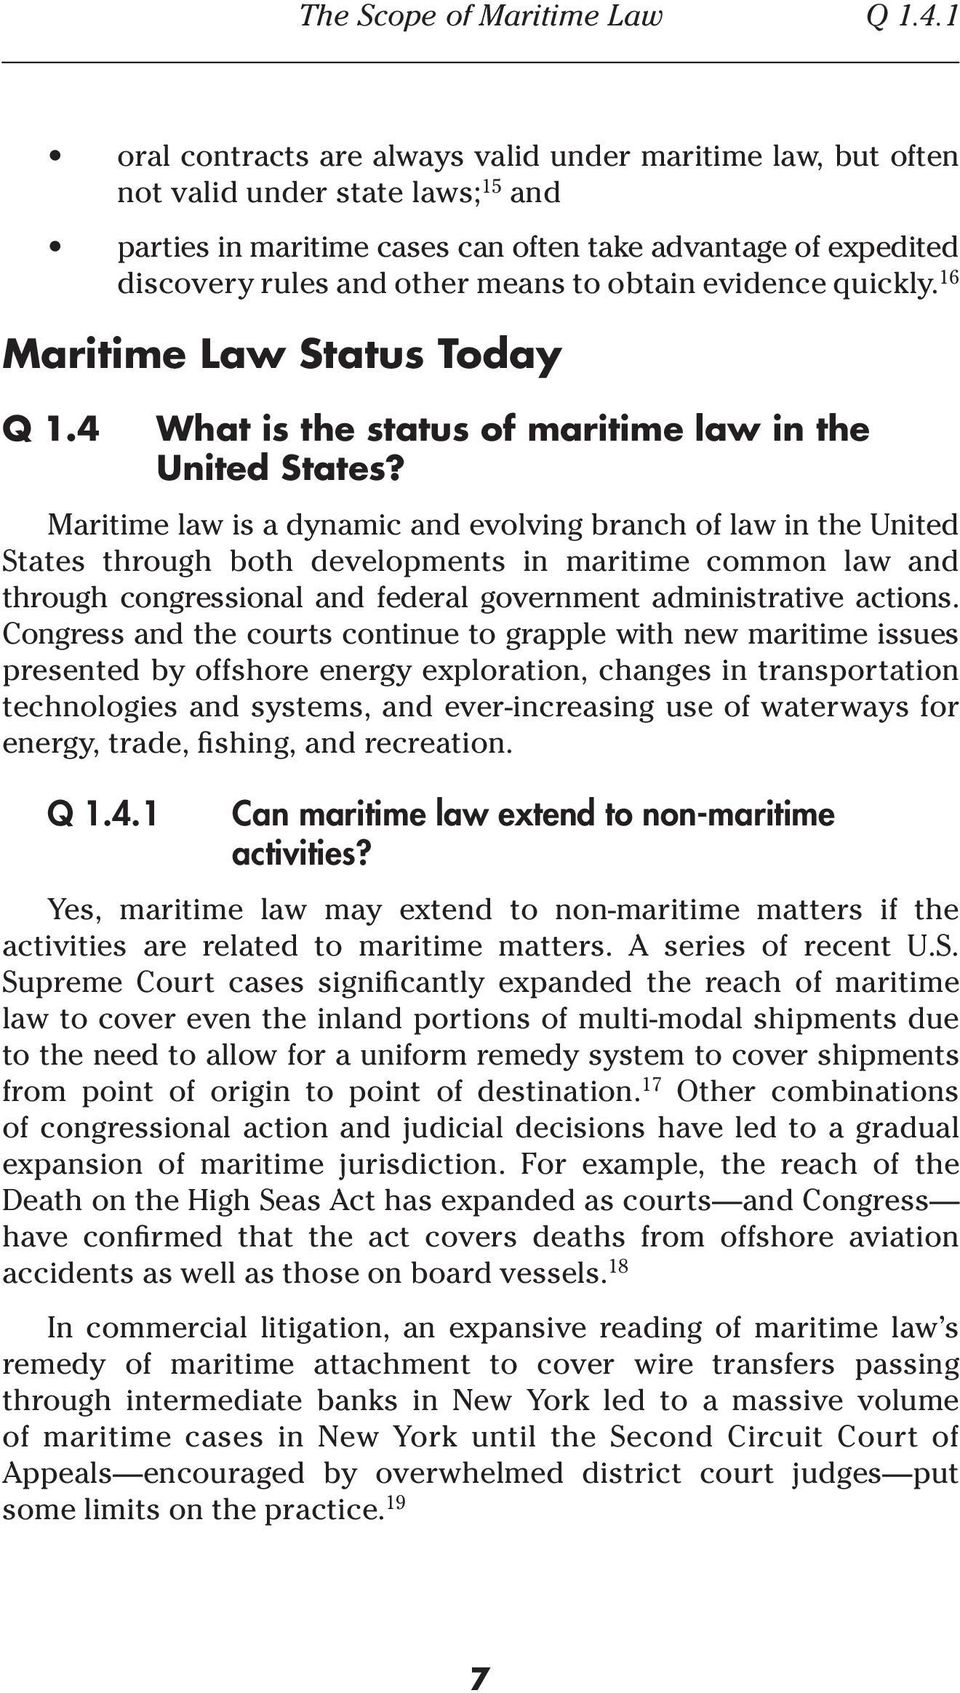 obtain evidence quickly. 16 Maritime Law Status Today Q 1.4 What is the status of maritime law in the United States?